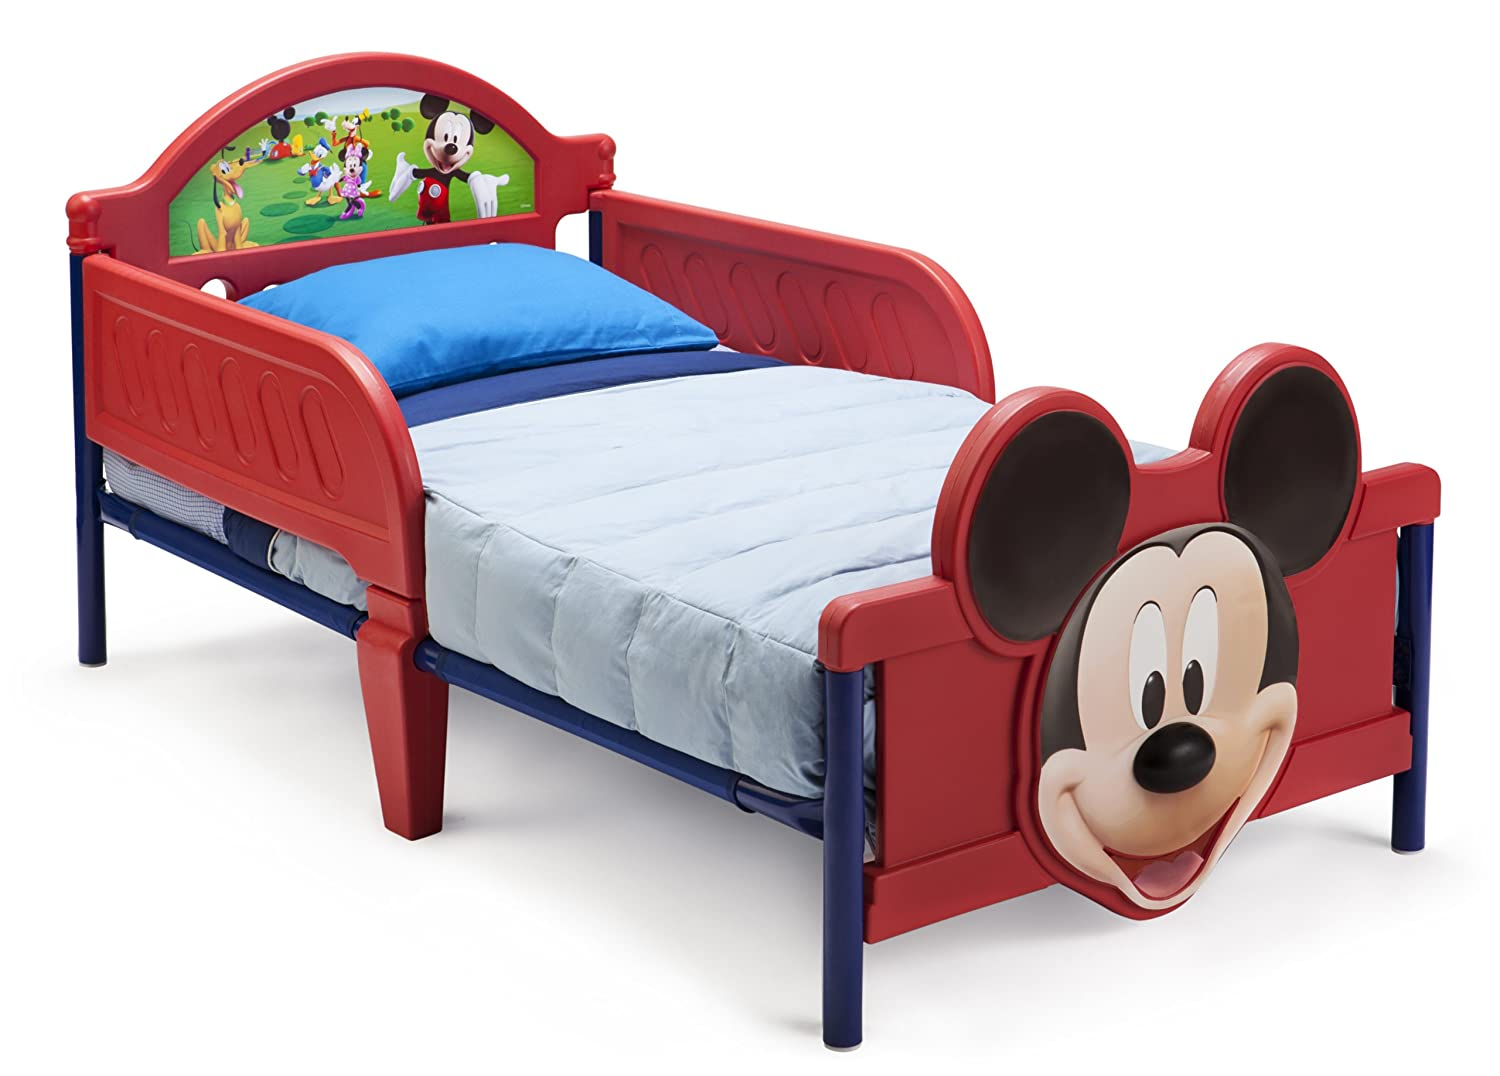 Mickey mouse furniture totally kids totally bedrooms kids bedroom ideas - Mickey mouse bedroom furniture ...